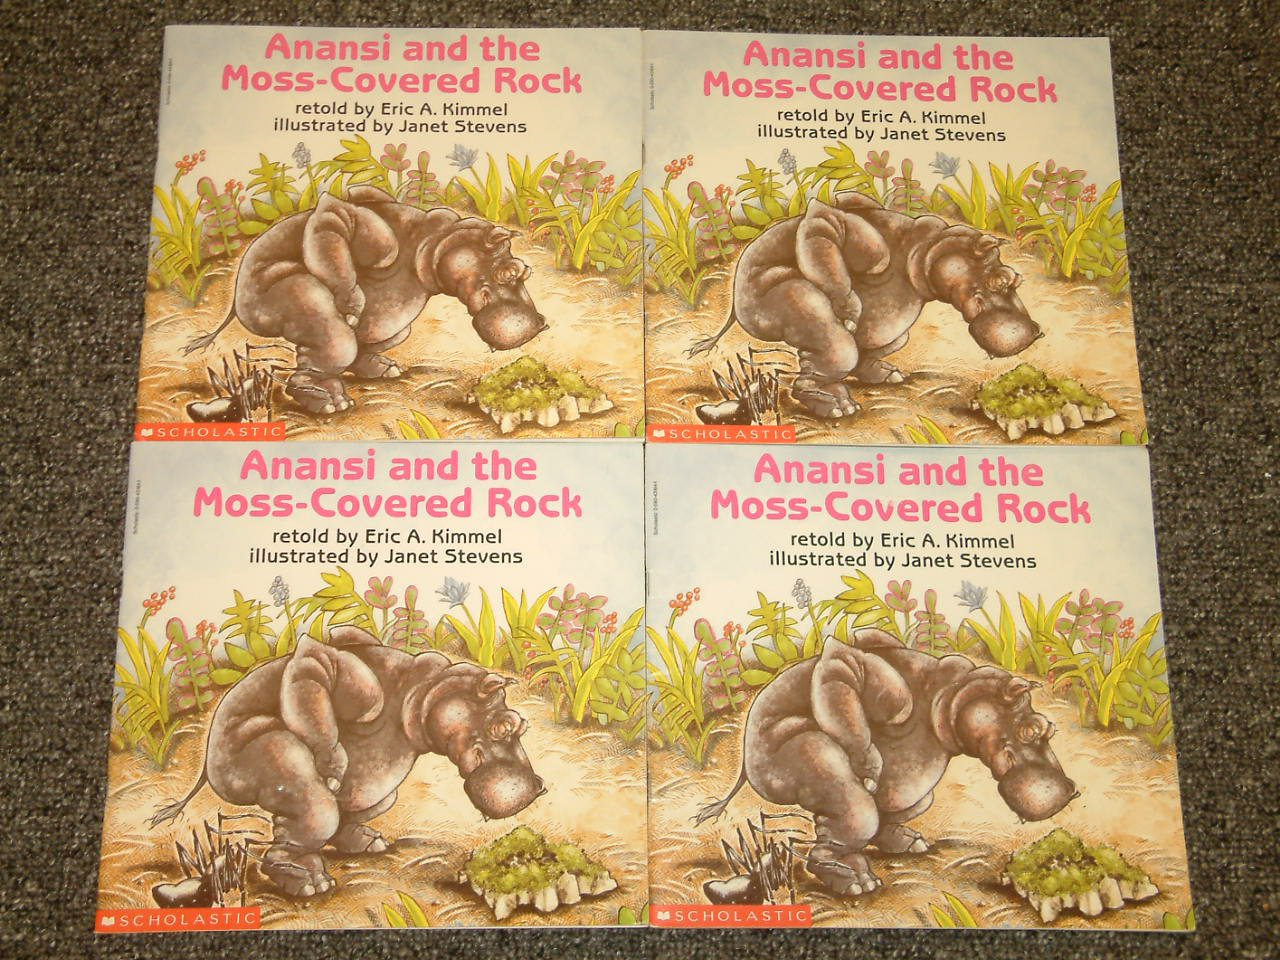 4 copies of Anansi and the Moss-Covered Rock by Eric A. Kimmel and Janet Stevens